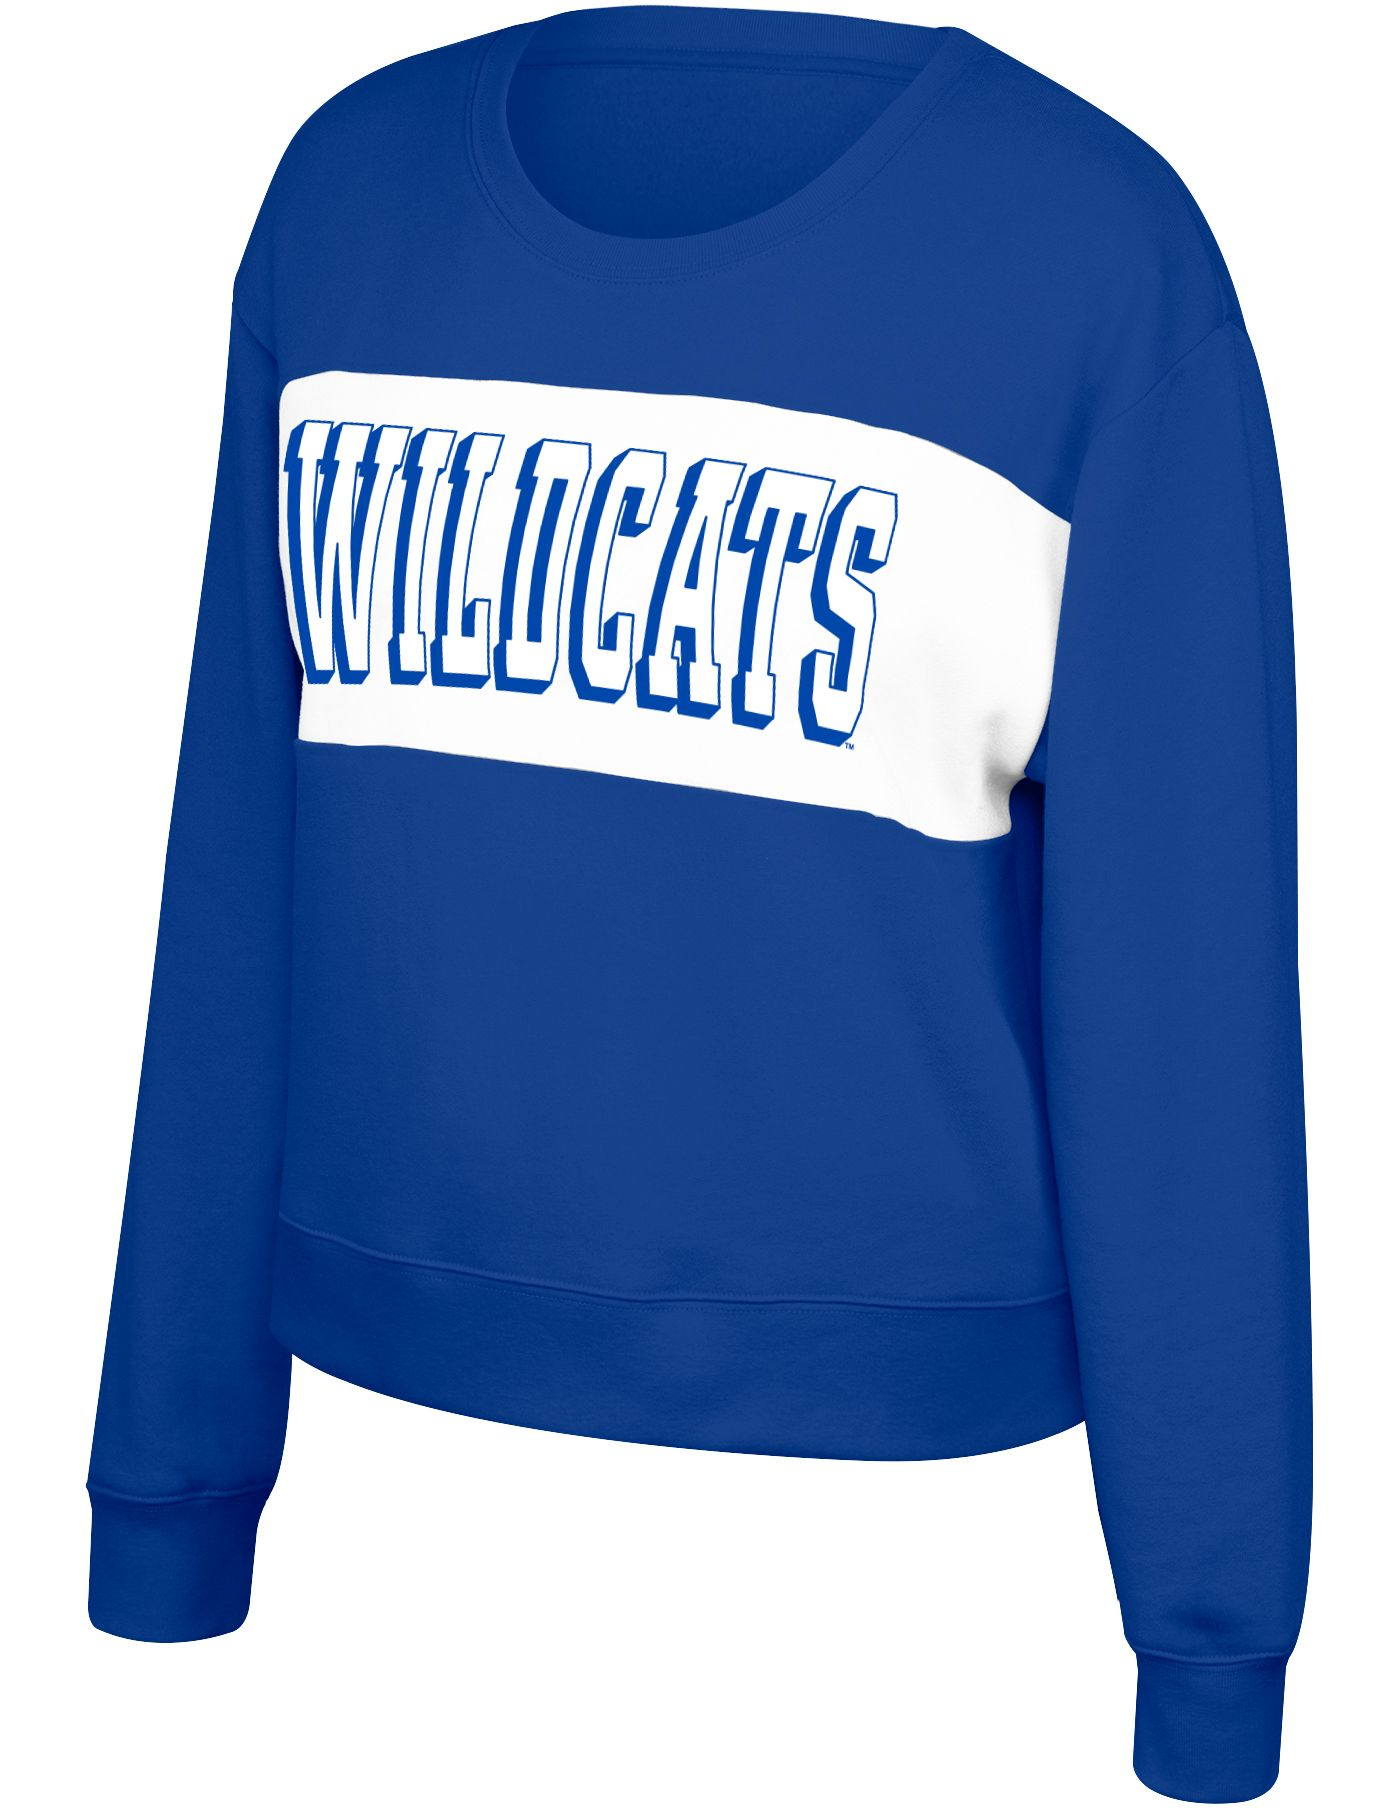 Top of the World Women's Kentucky Wildcats Blue Superstar Crew Neck Sweatshirt